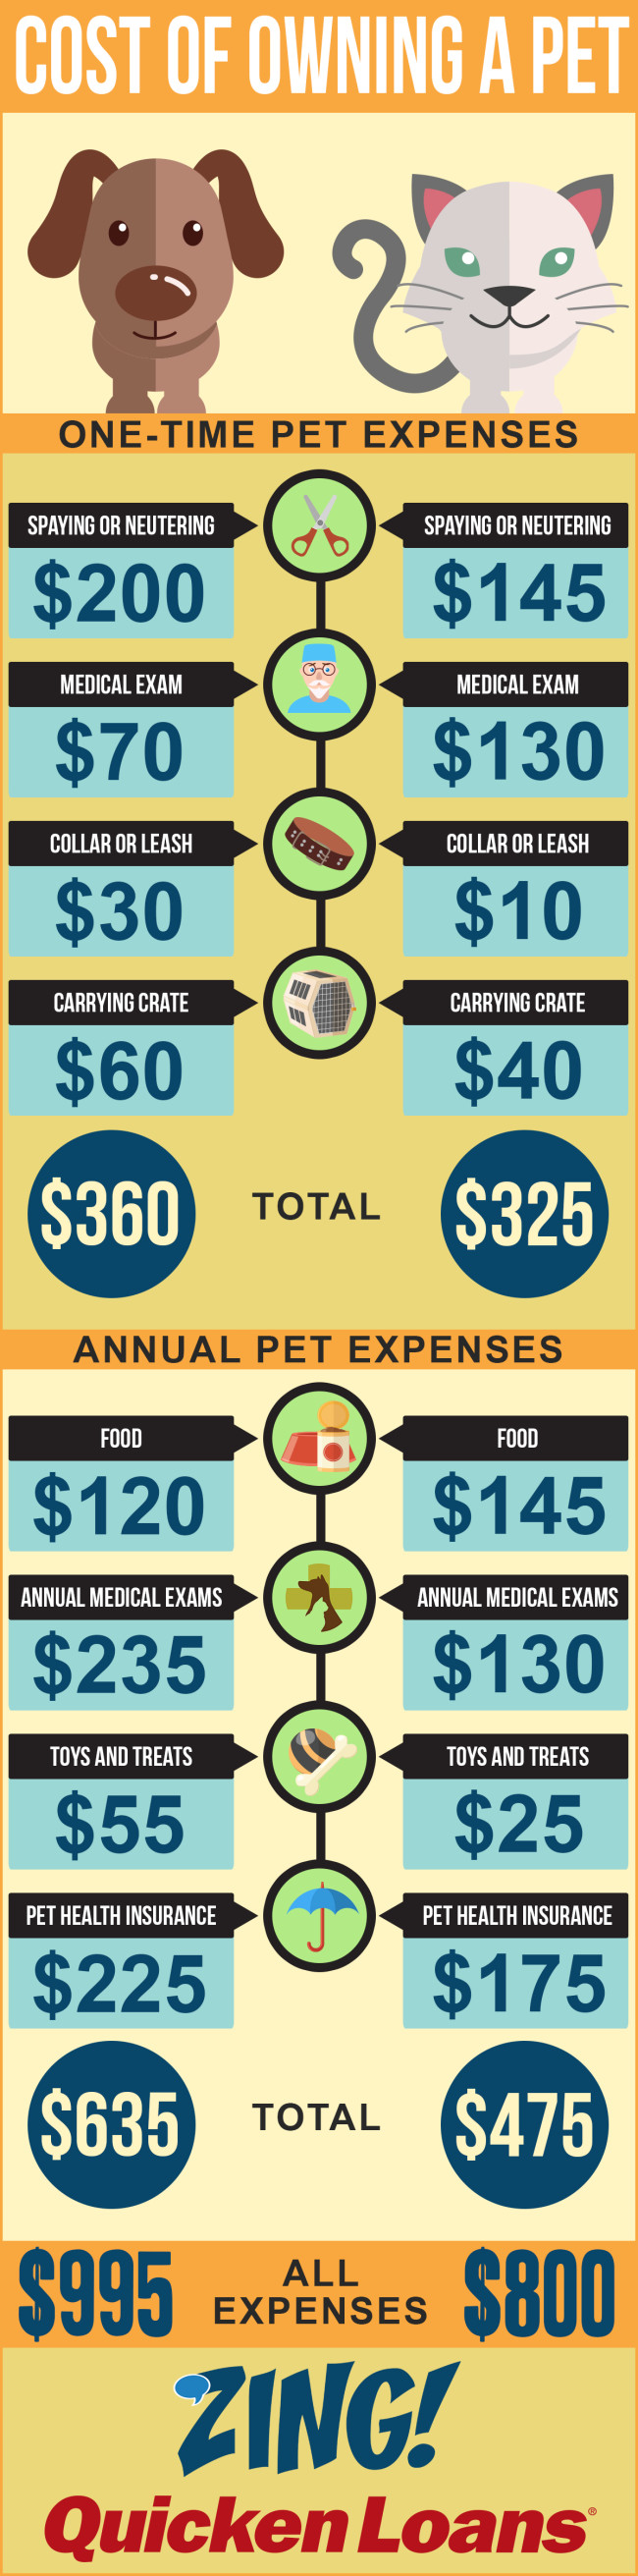 Cost of Owning a Pet - Quicken Loans Zing Blog